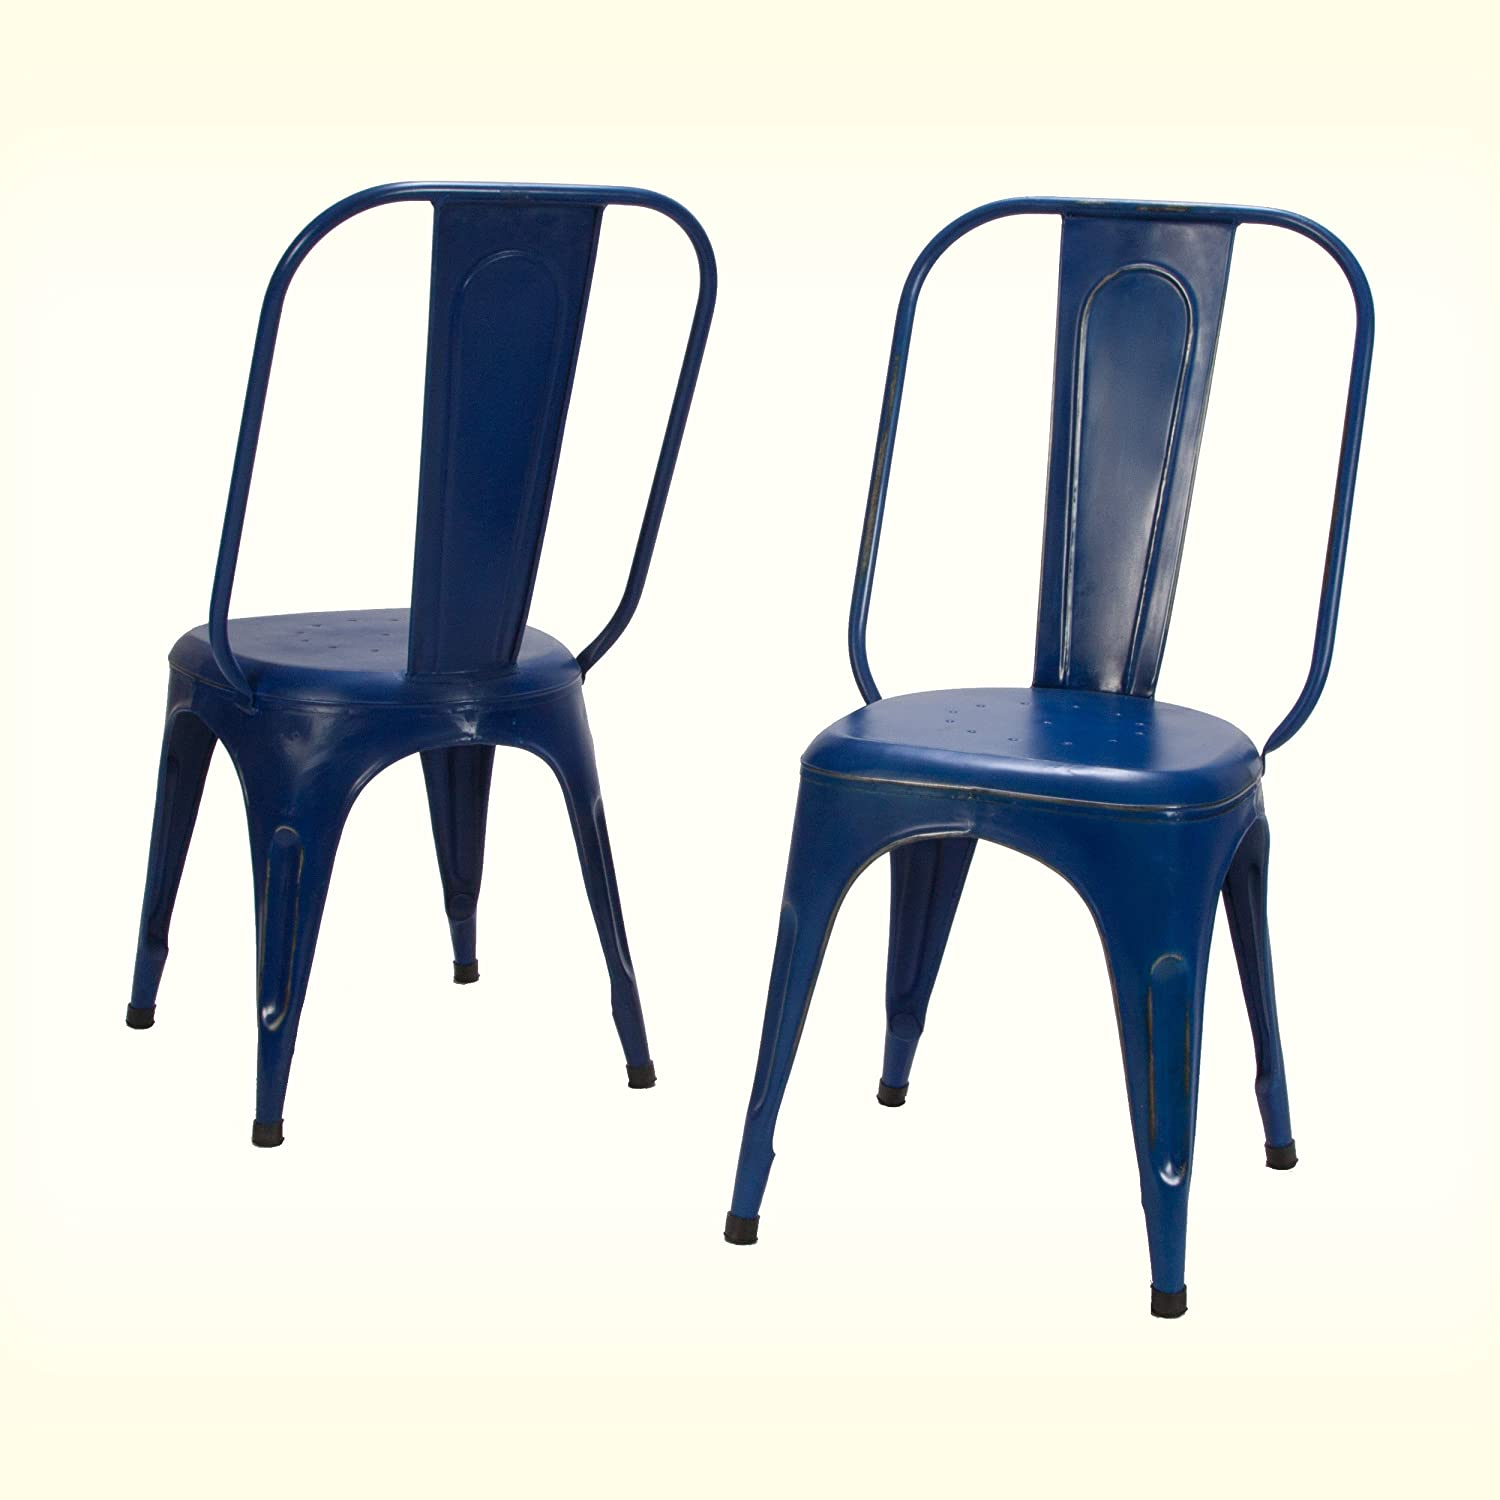 Home Elegance Metal Chair, Set of 4, Rustic Blue